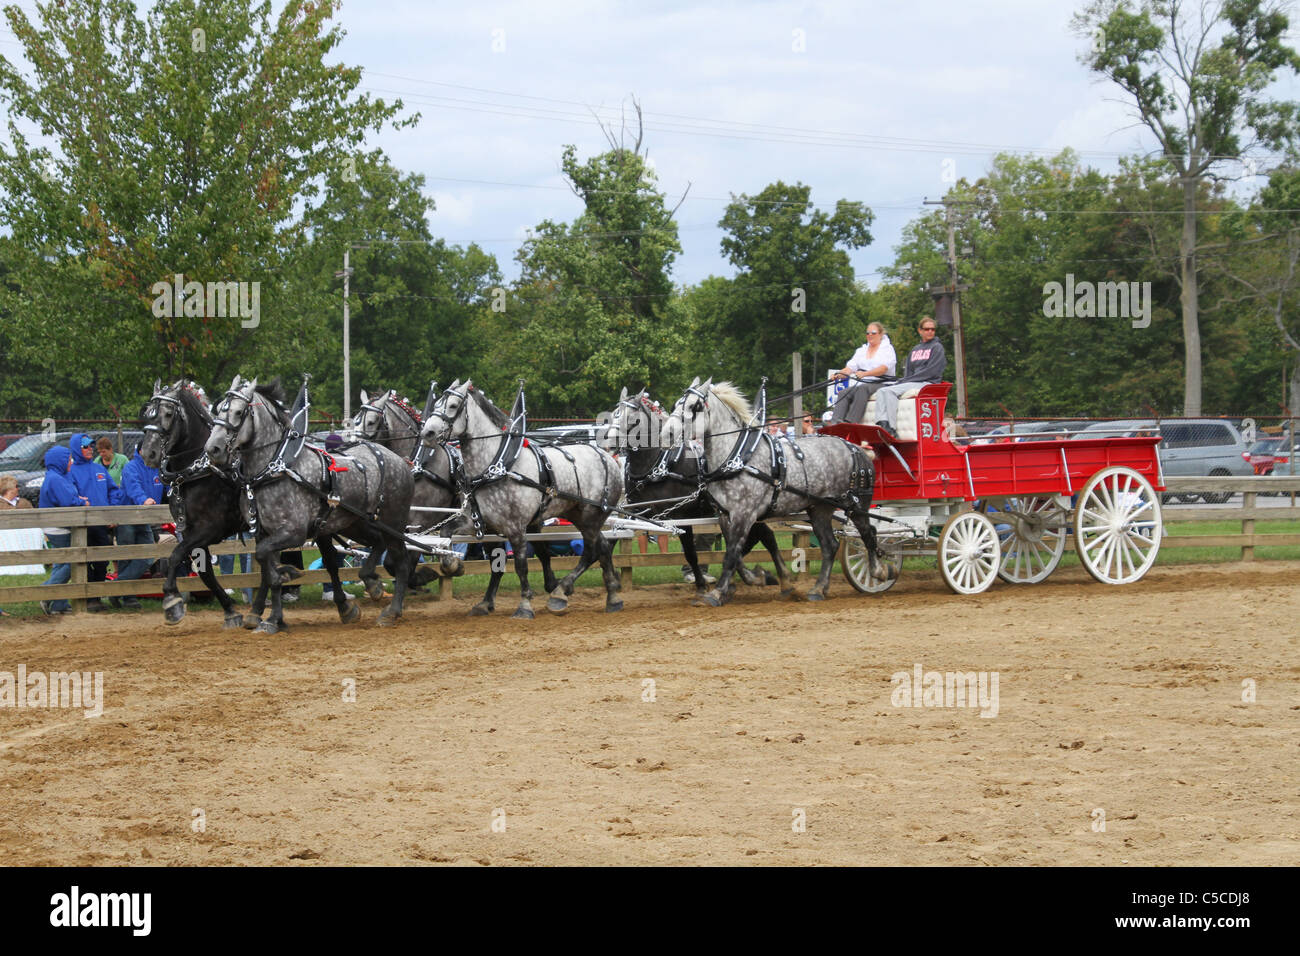 Draft Horses Pulling A Hitch Wagon. Workhorses with harnesses. - Stock Image